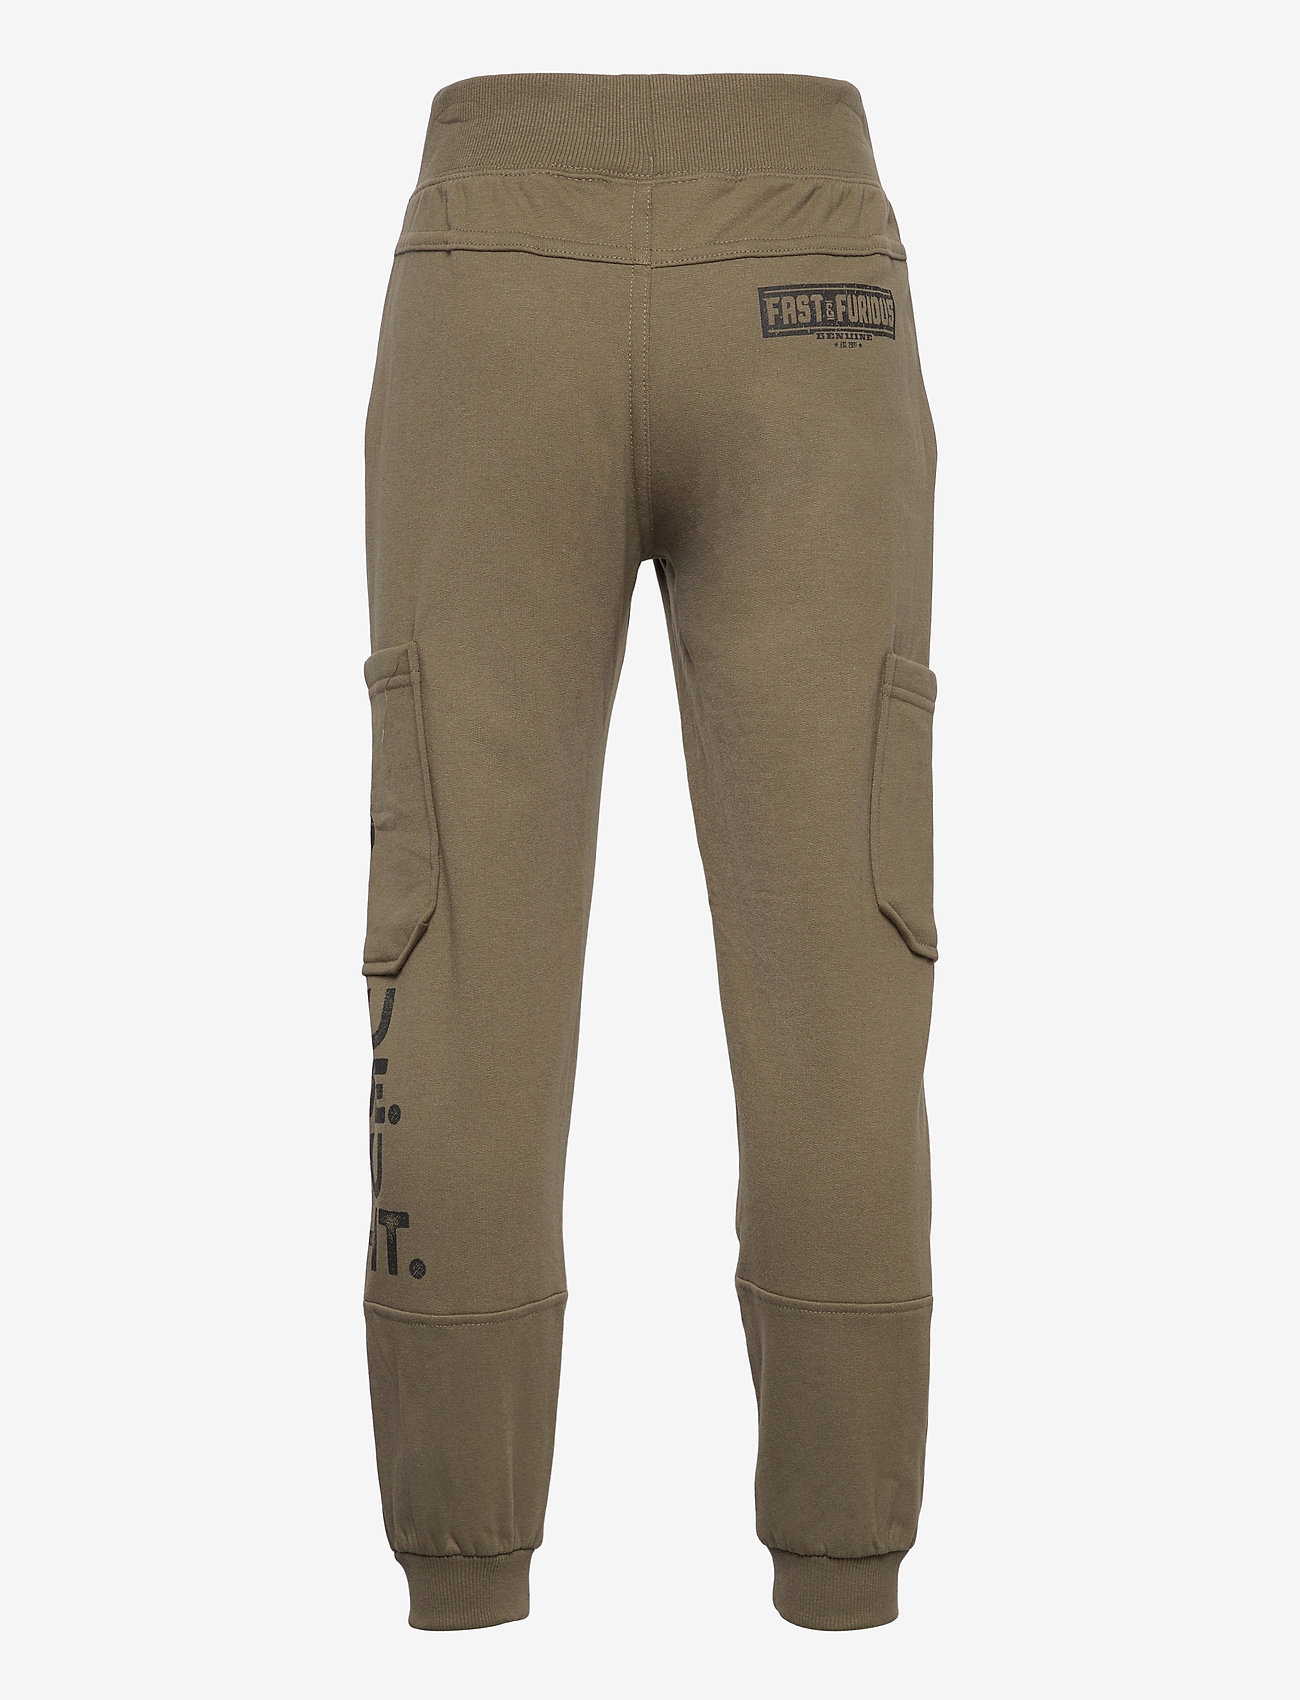 Fast & Furious - TROUSER - trousers - green - 1